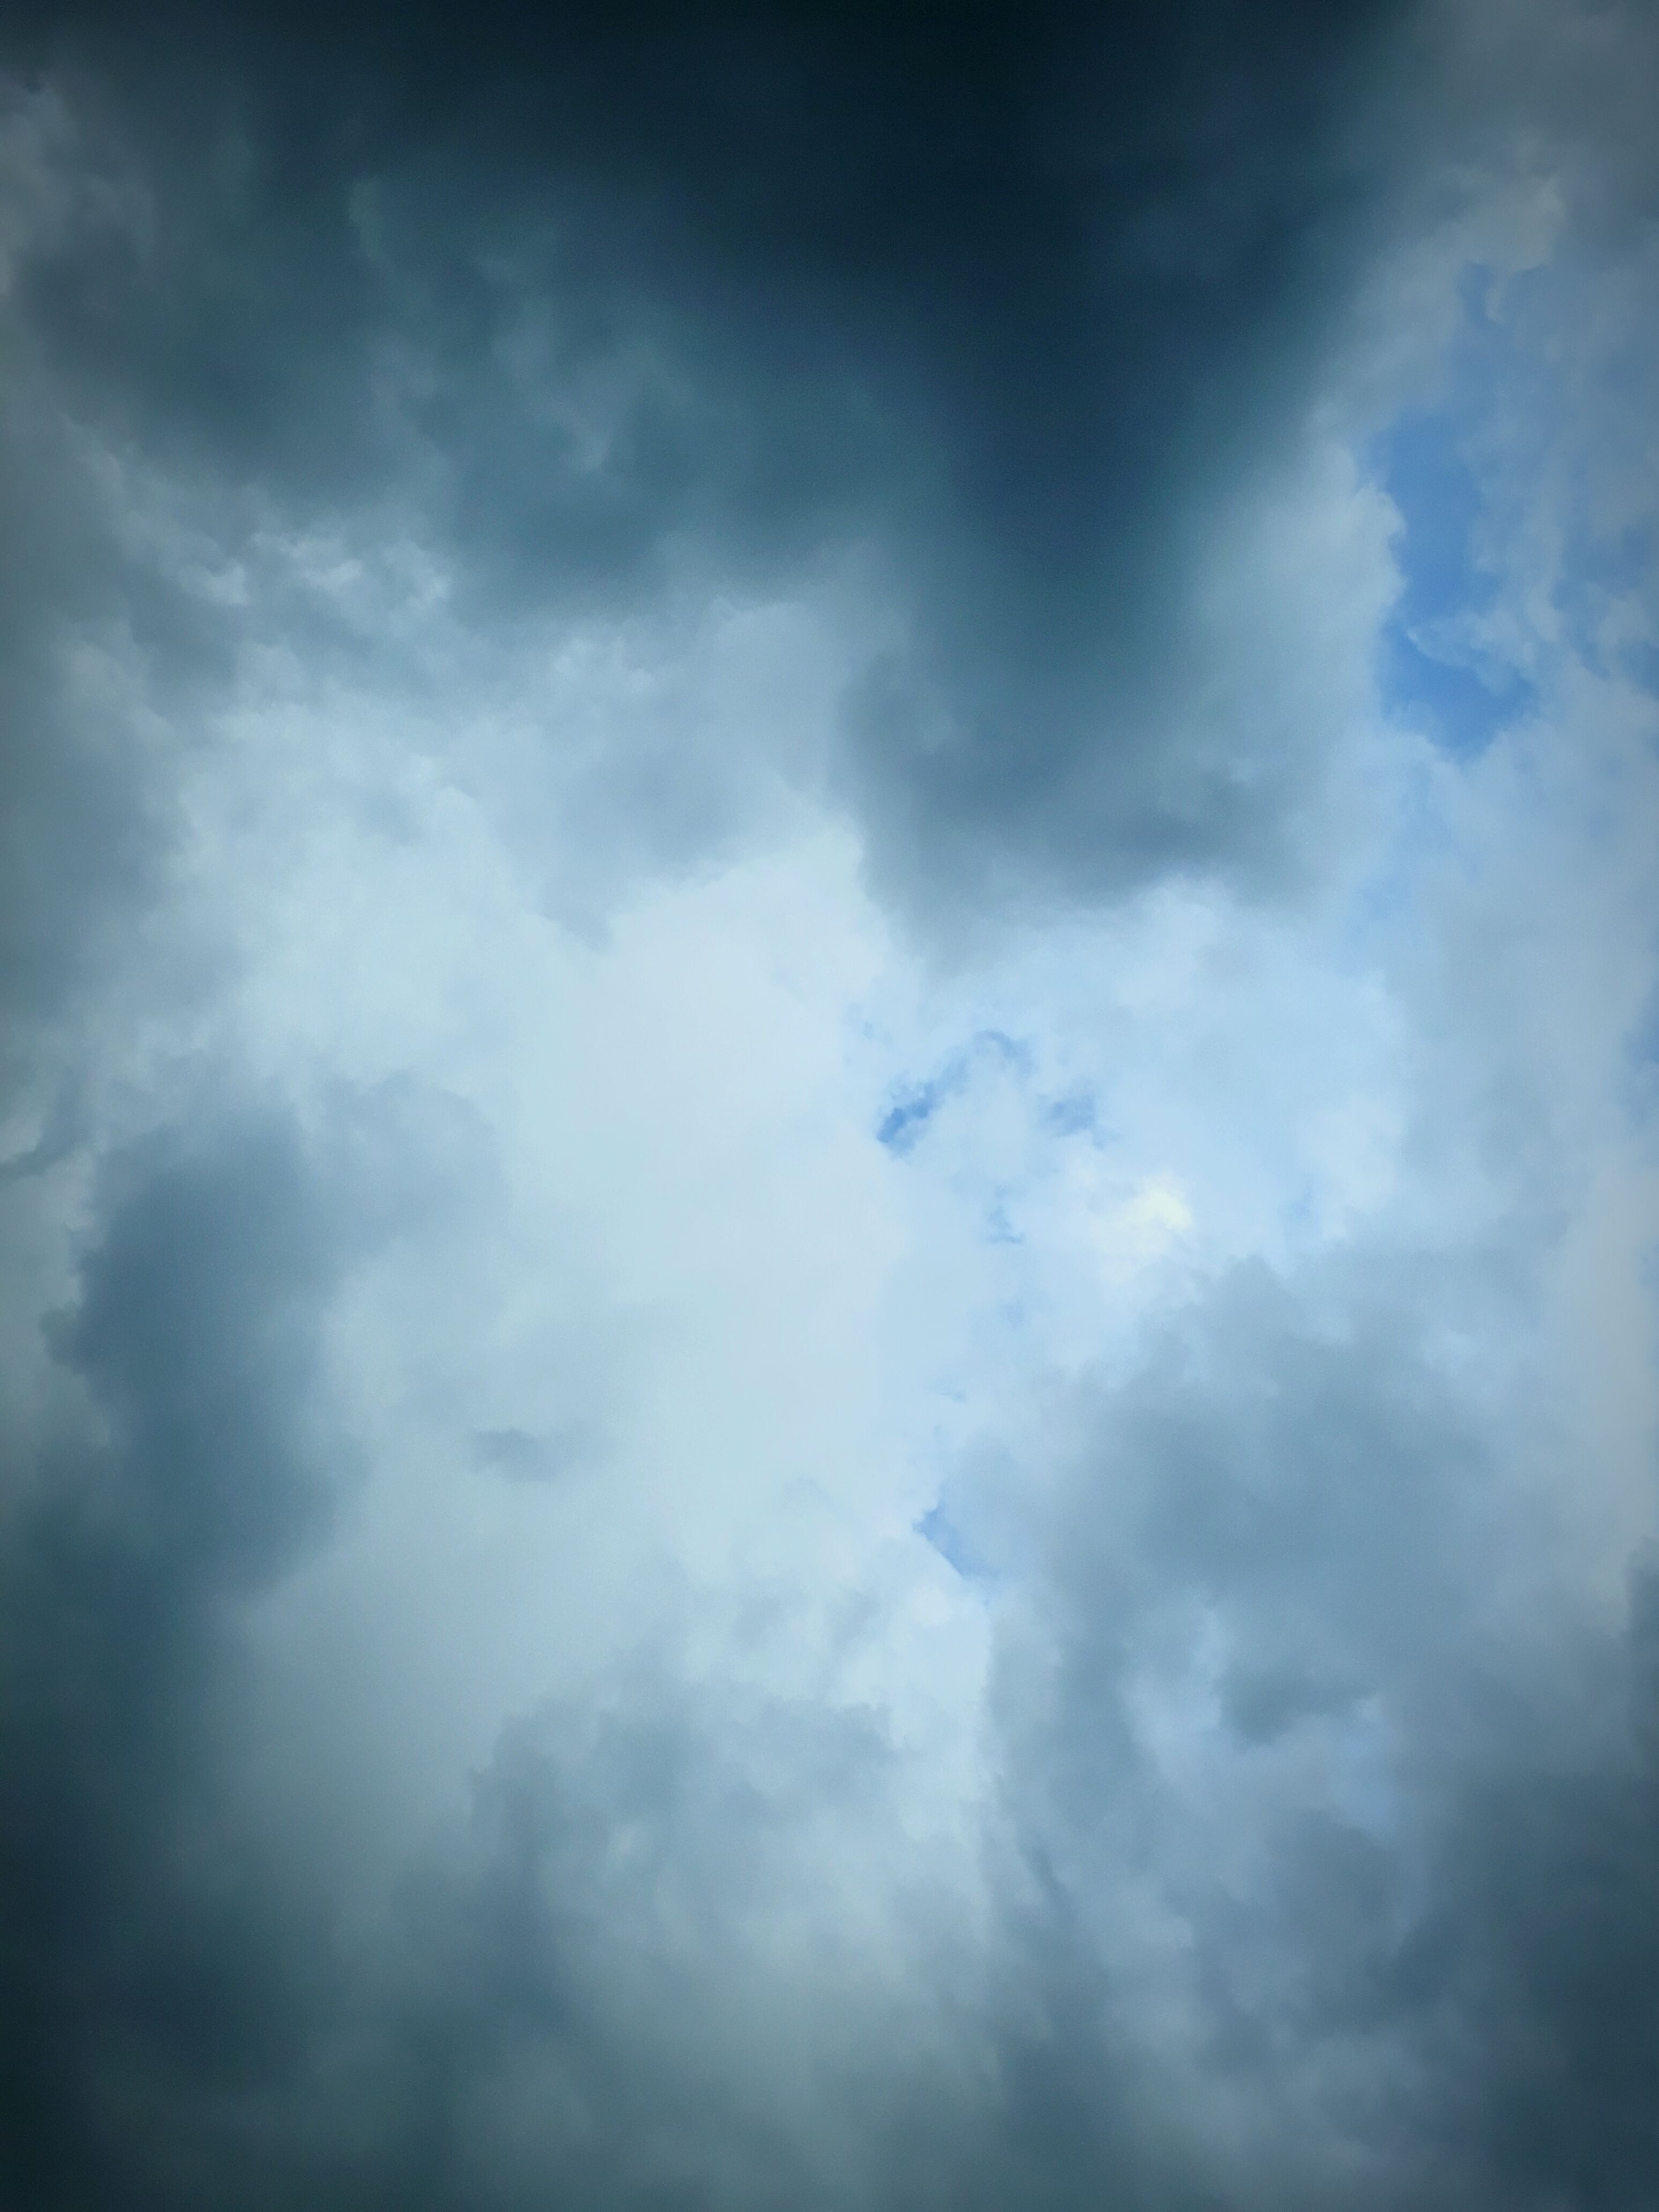 cloud - sky, nature, beauty in nature, sky, low angle view, weather, cloudscape, atmospheric mood, sky only, no people, scenics, tranquility, backgrounds, outdoors, day, tranquil scene, storm cloud, awe, blue